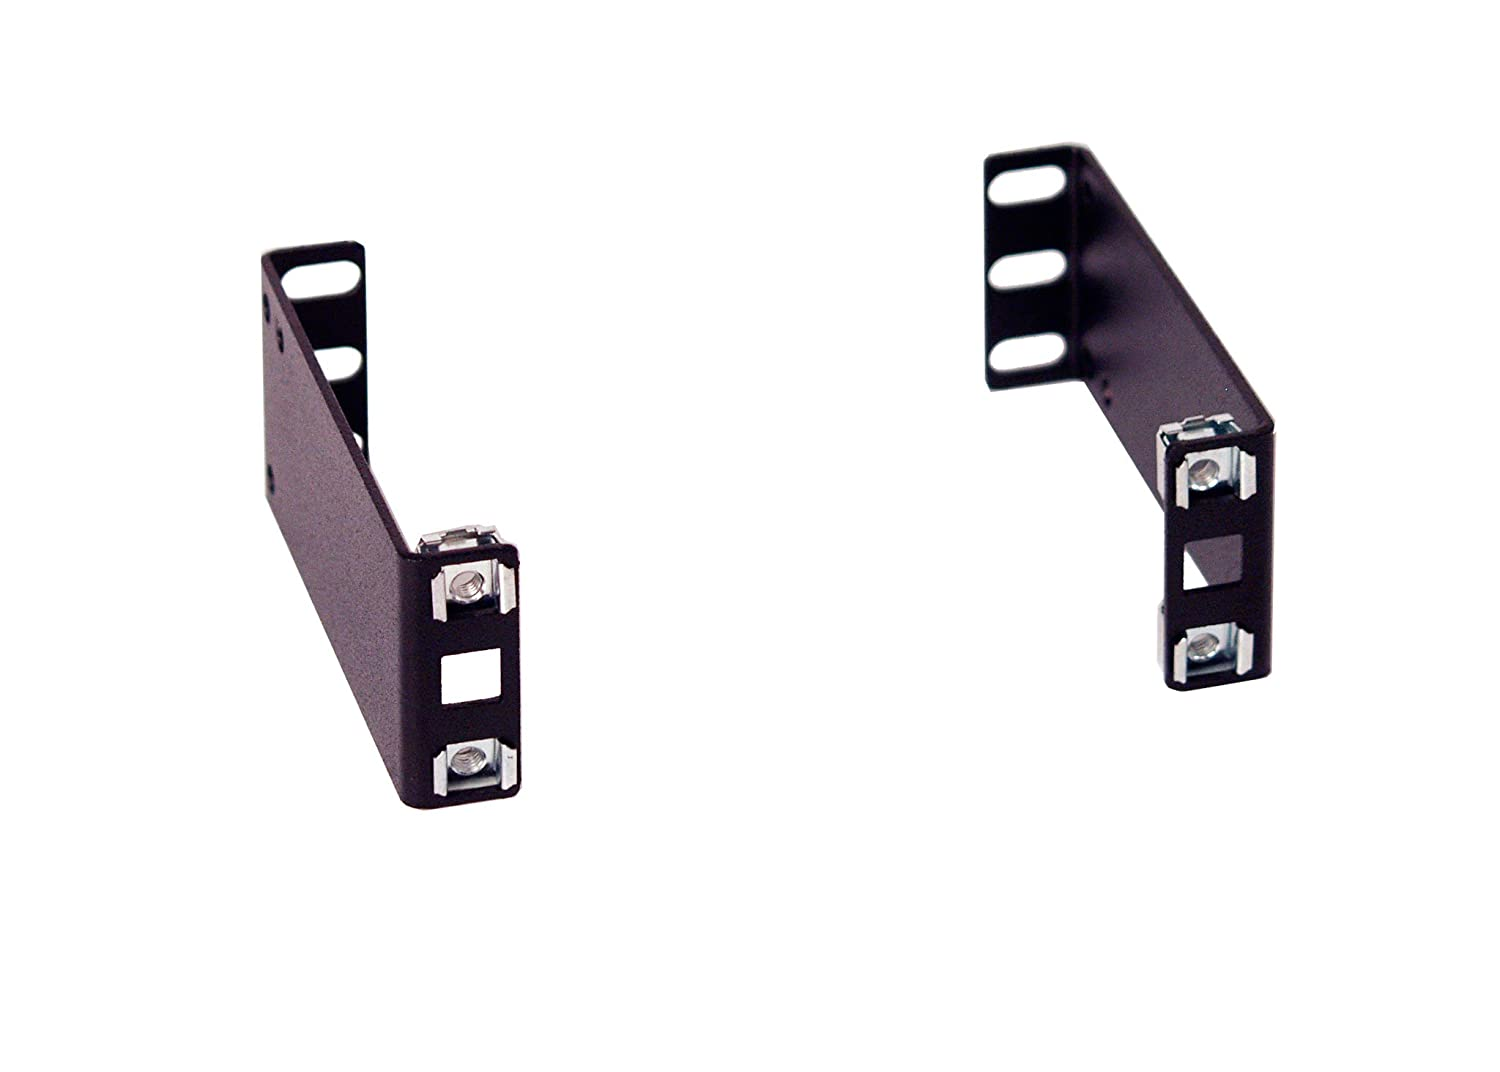 IAB104V10-1U 1U 4 Rack Extender for industrial Standard 19 2 Post or 4 Post rack cabinet.